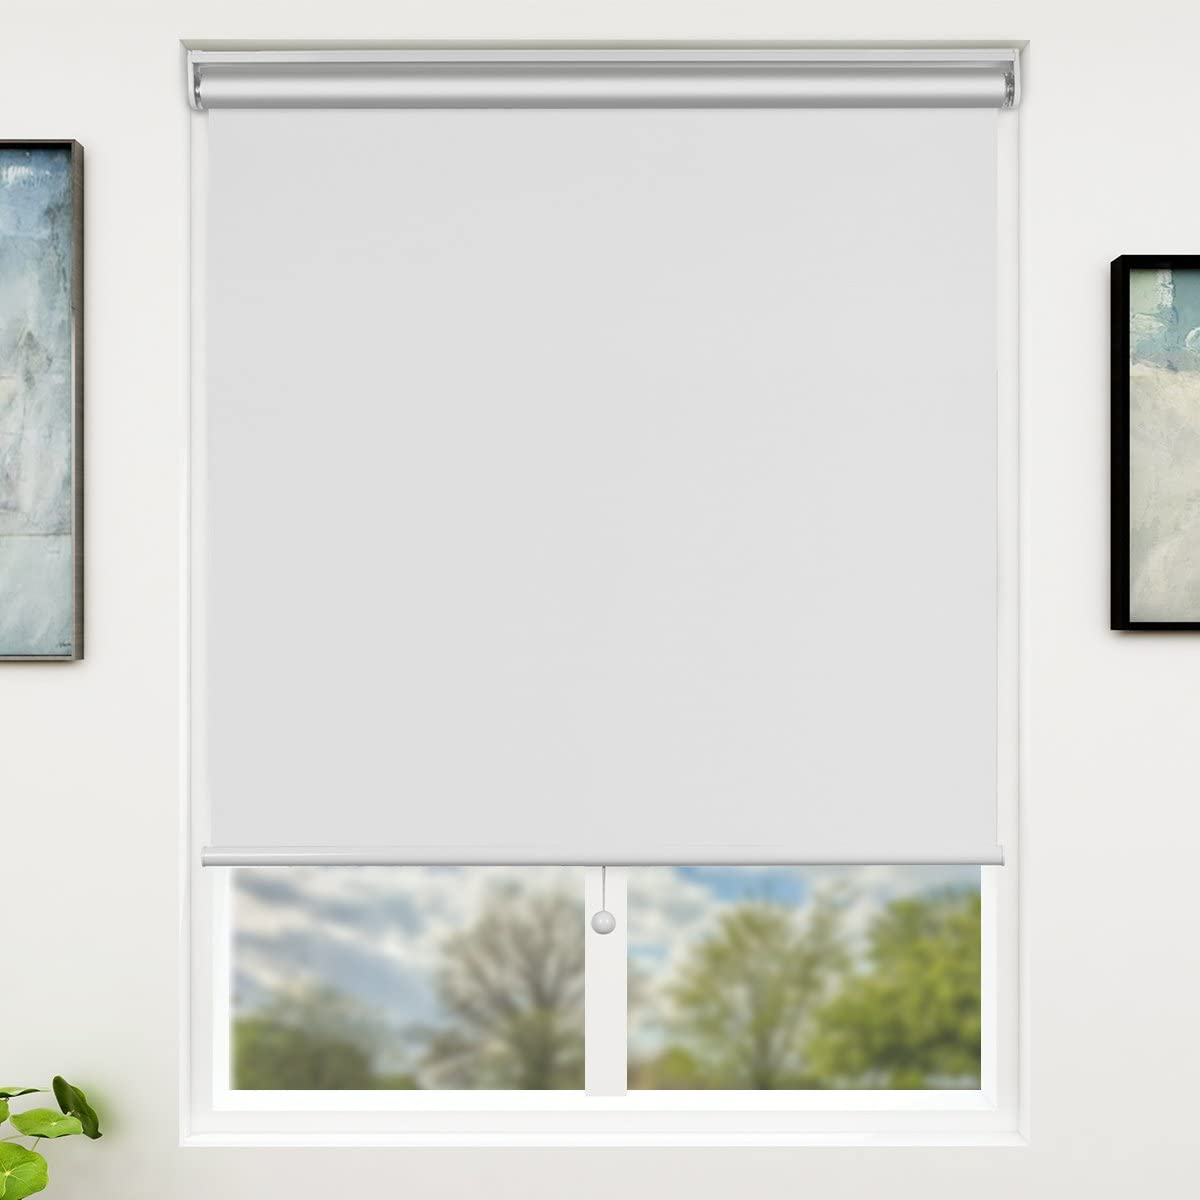 SUNFREE Blackout Window Shades Cordless Window Blinds with Spring Lifting System for Home & Office, 36 x 72 Inch, White